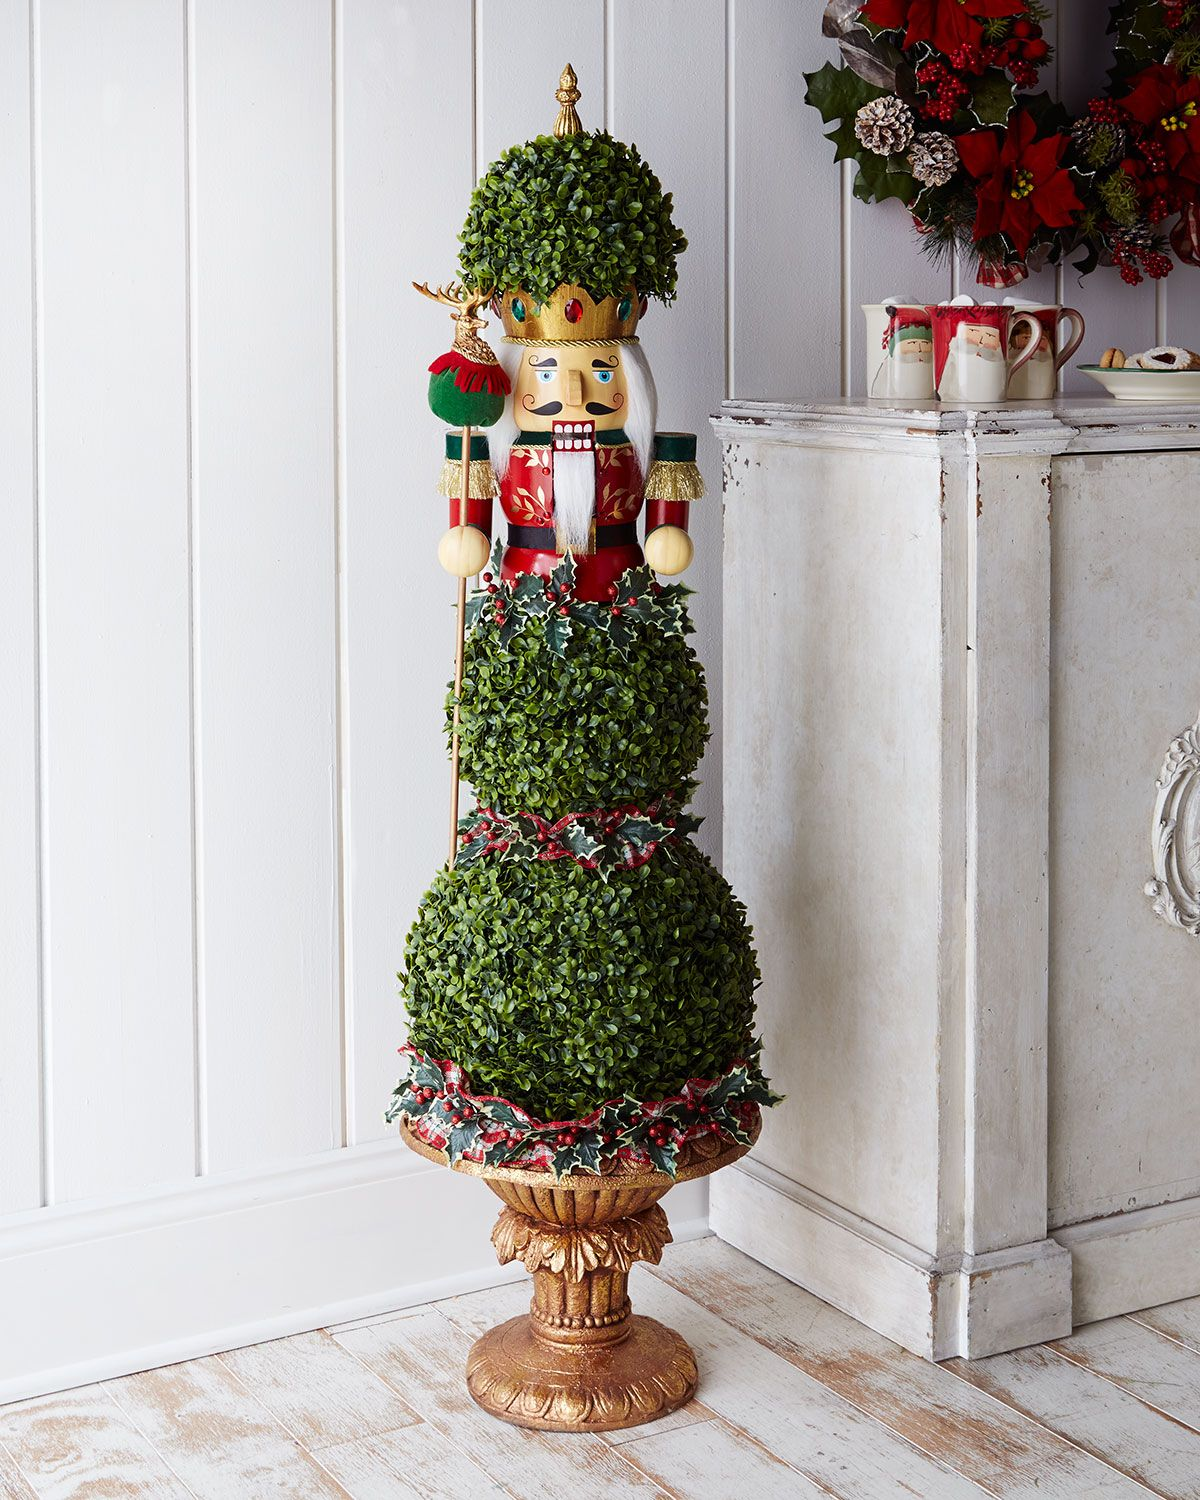 How to make a nutcracker christmas decoration - Nutcracker Christmas Topiary At Horchow Wow Very Pricey Wonder If I Could Make This Noticed Marshall S Tj And Home Goods All Had A Few Giant